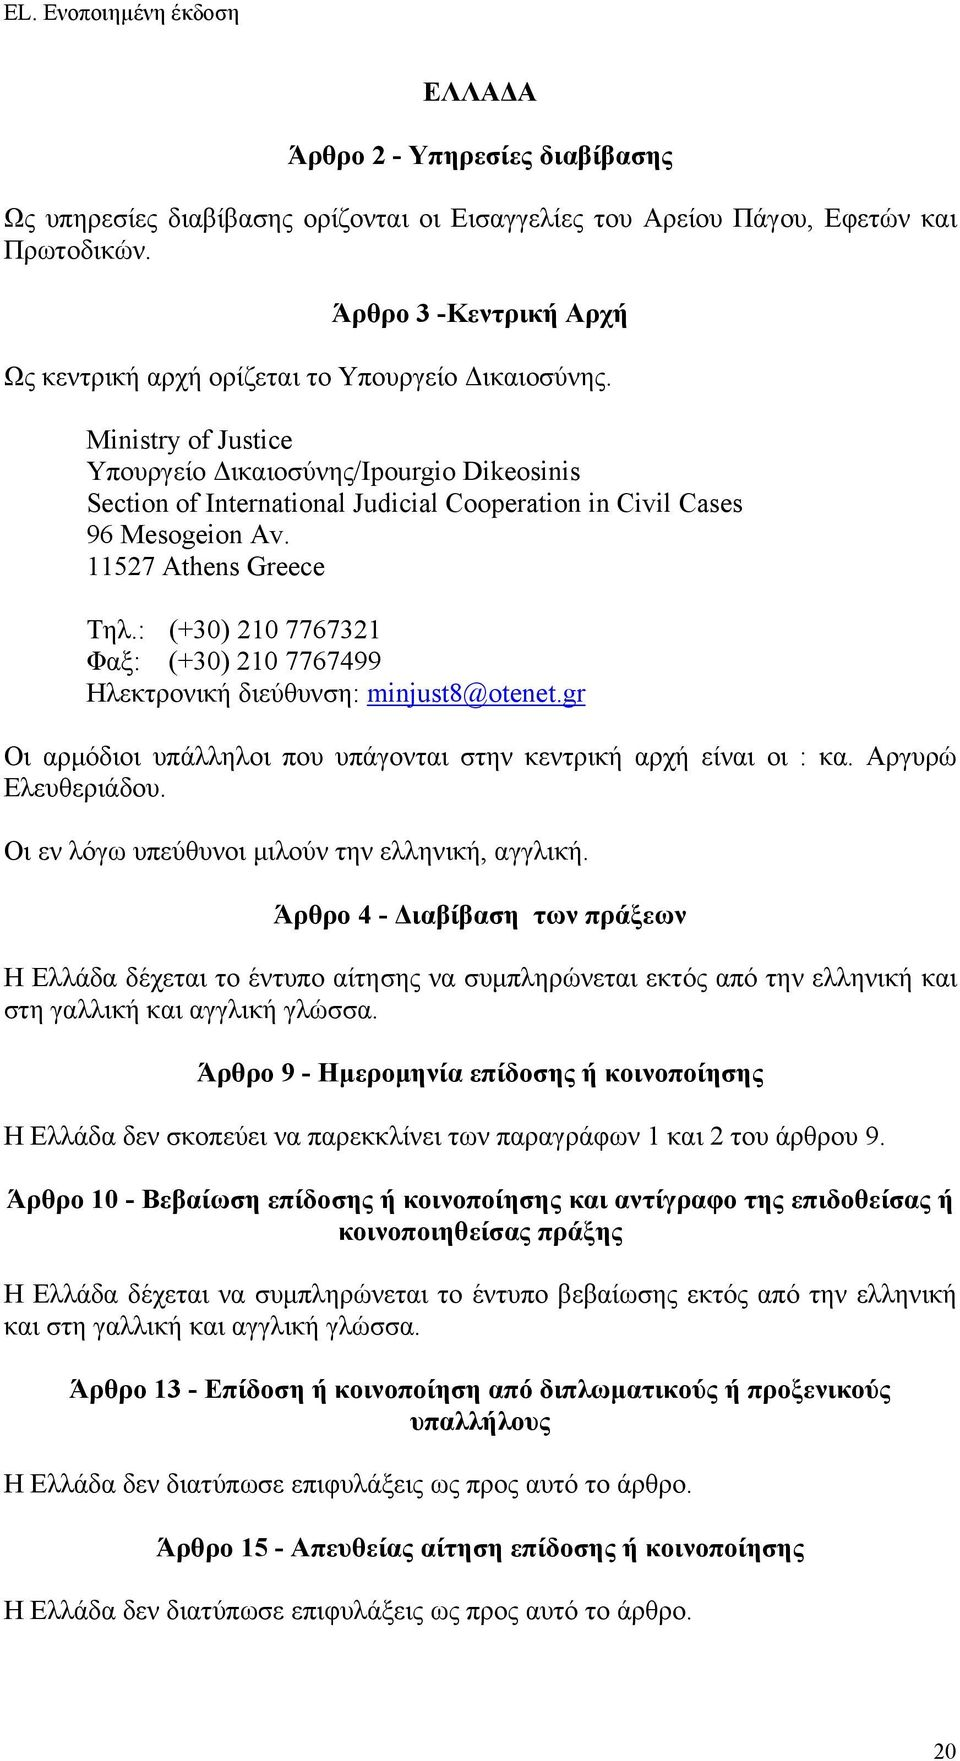 Ministry of Justice Υπουργείο Δικαιοσύνης/Ipourgio Dikeosinis Section of International Judicial Cooperation in Civil Cases 96 Mesogeion Av. 11527 Athens Greece Τηλ.